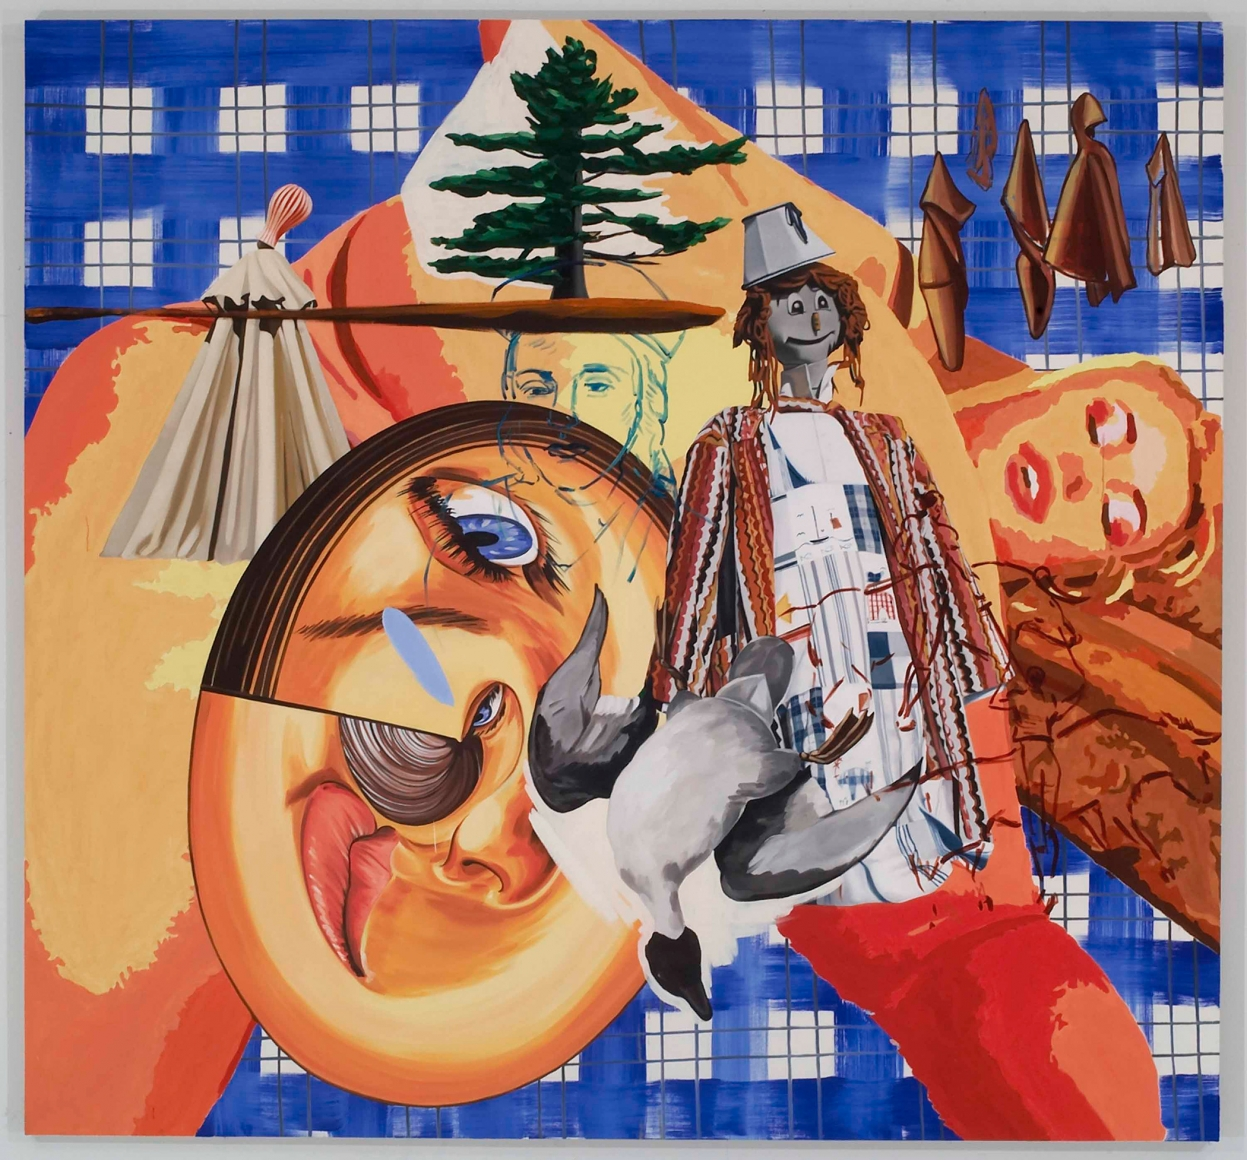 DAVID SALLE, The Scarecrows, 2006